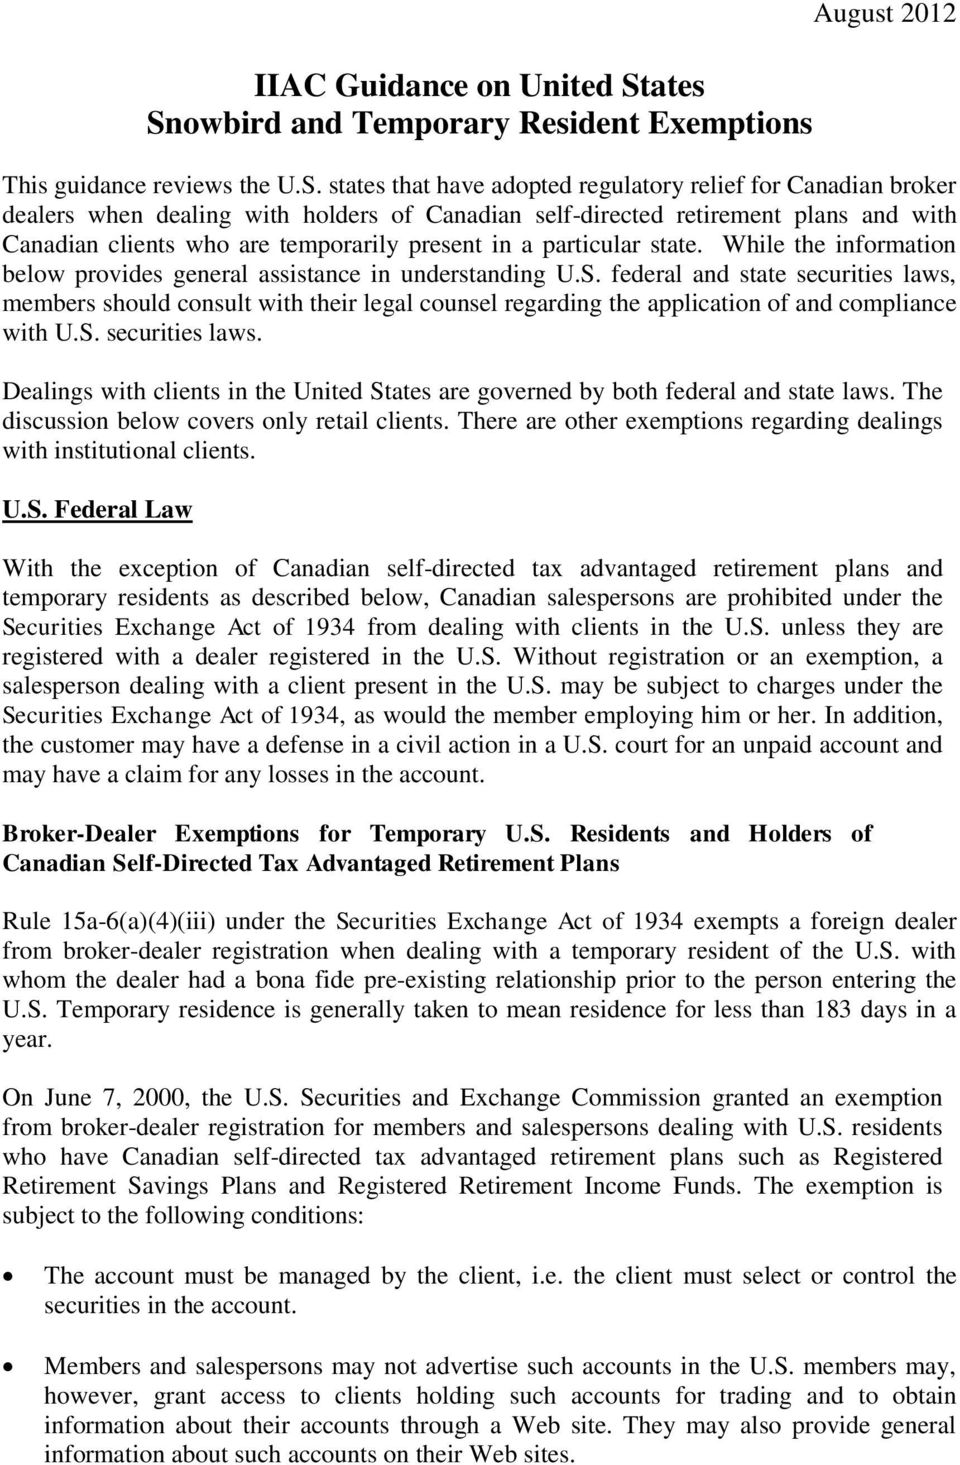 owbird and Temporary Resident Exemptions August 2012 This guidance reviews the U.S.